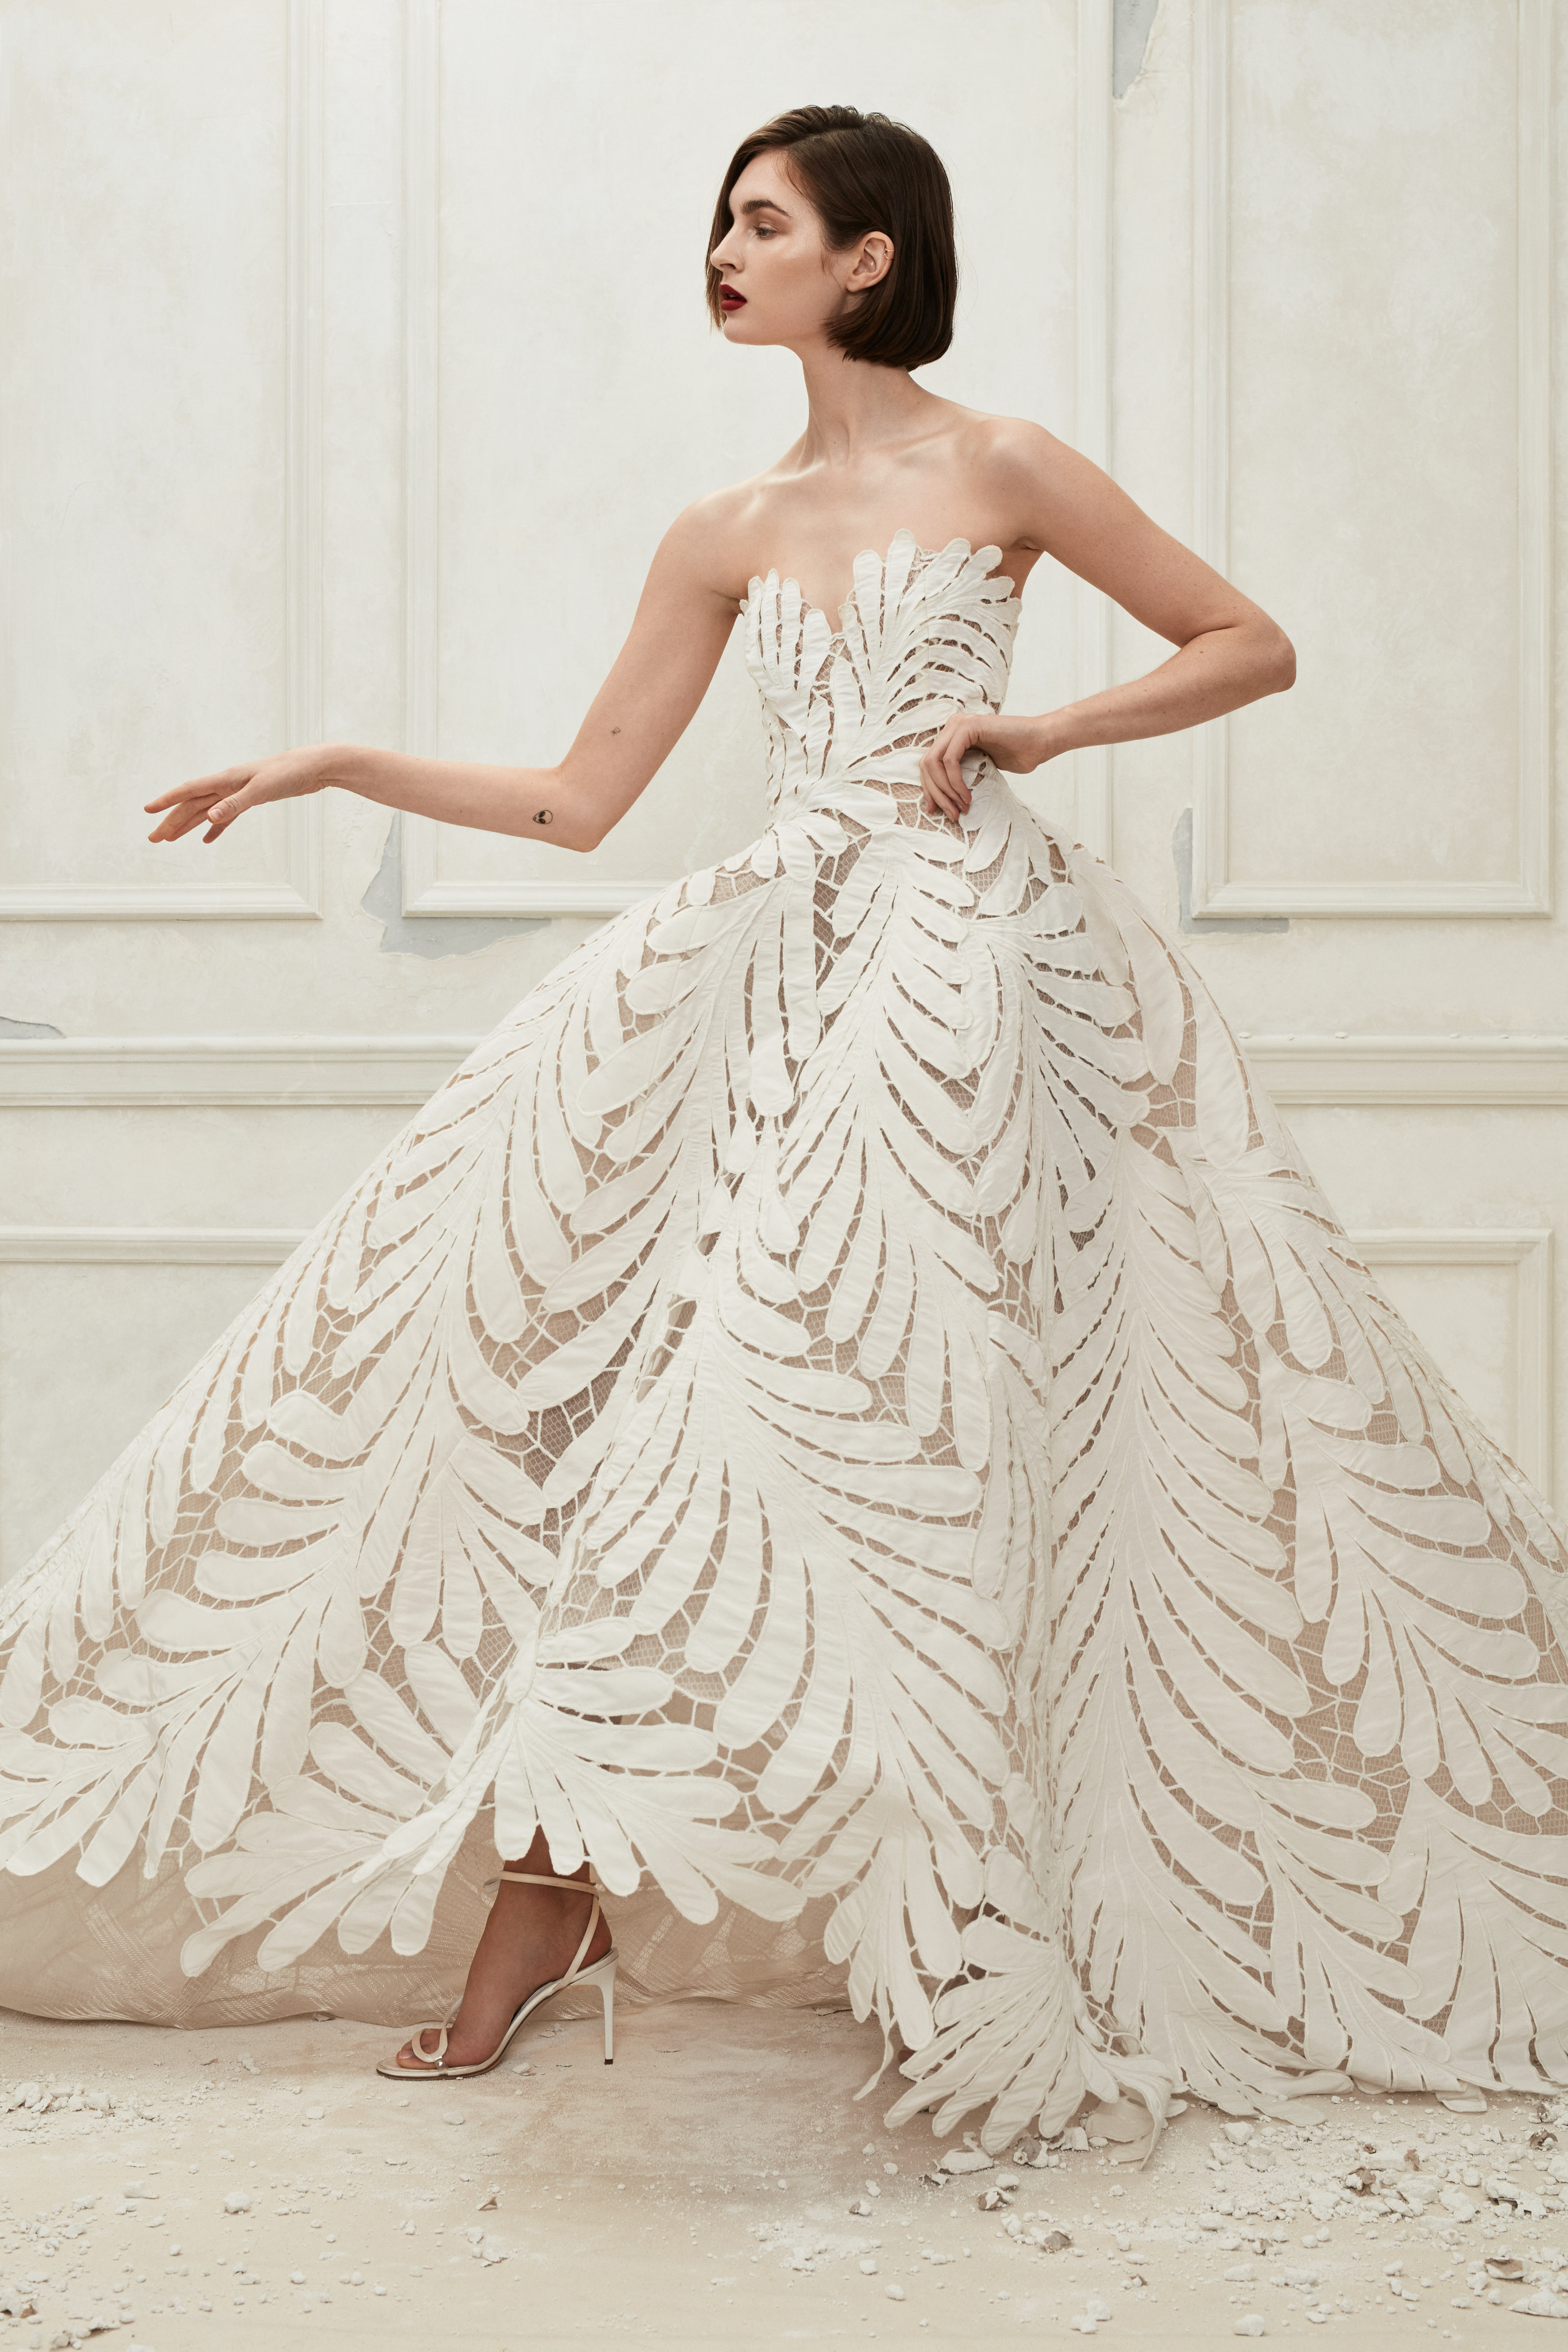 Oscar de la Renta Fall 2019 Wedding Dress Collection